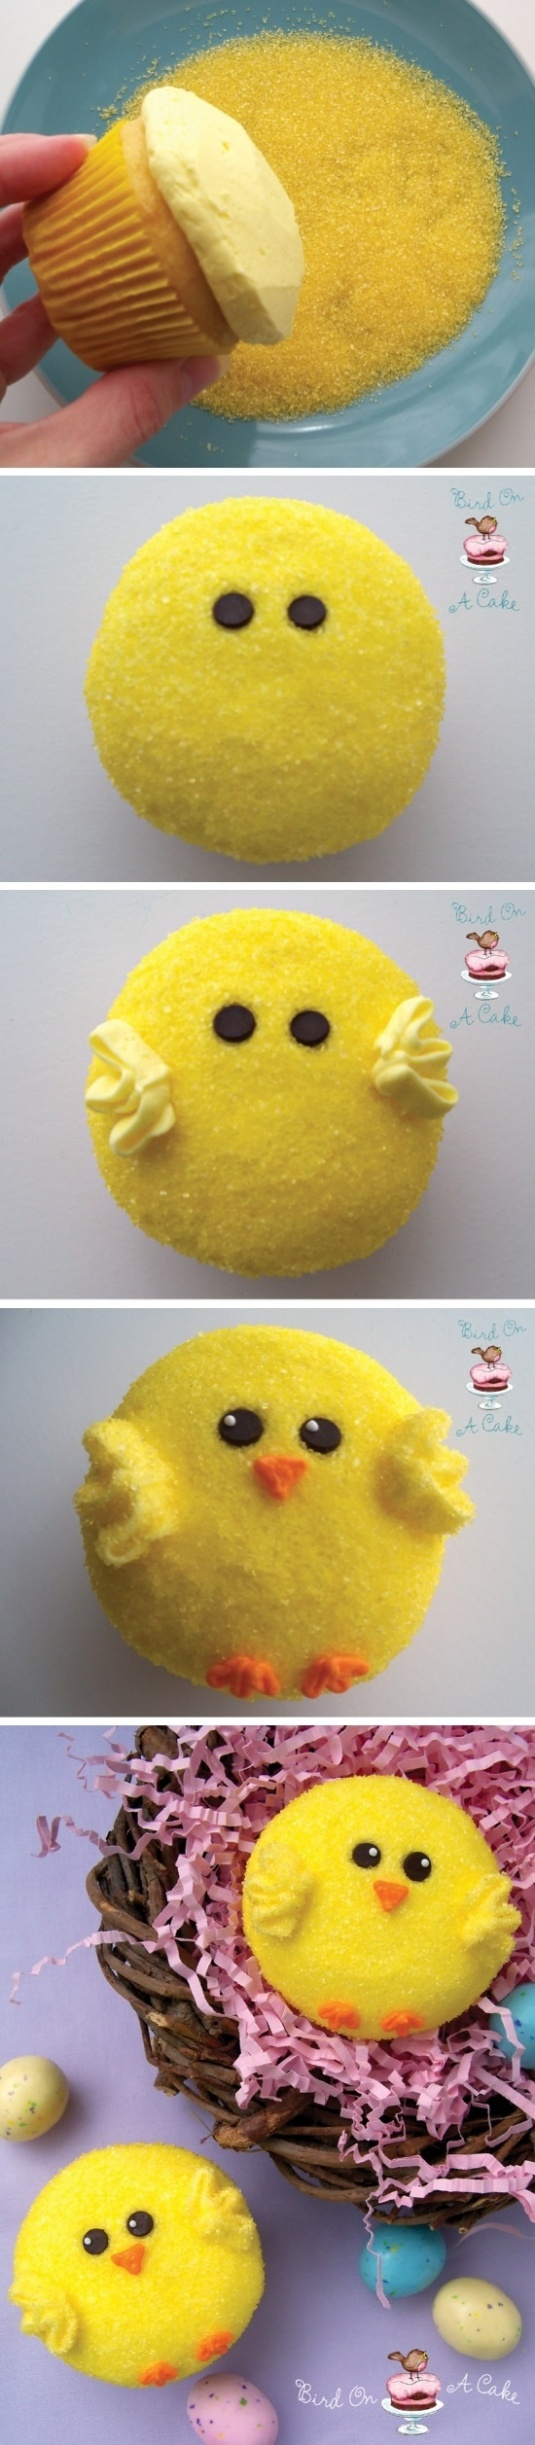 Easter cupcakes Pinterest